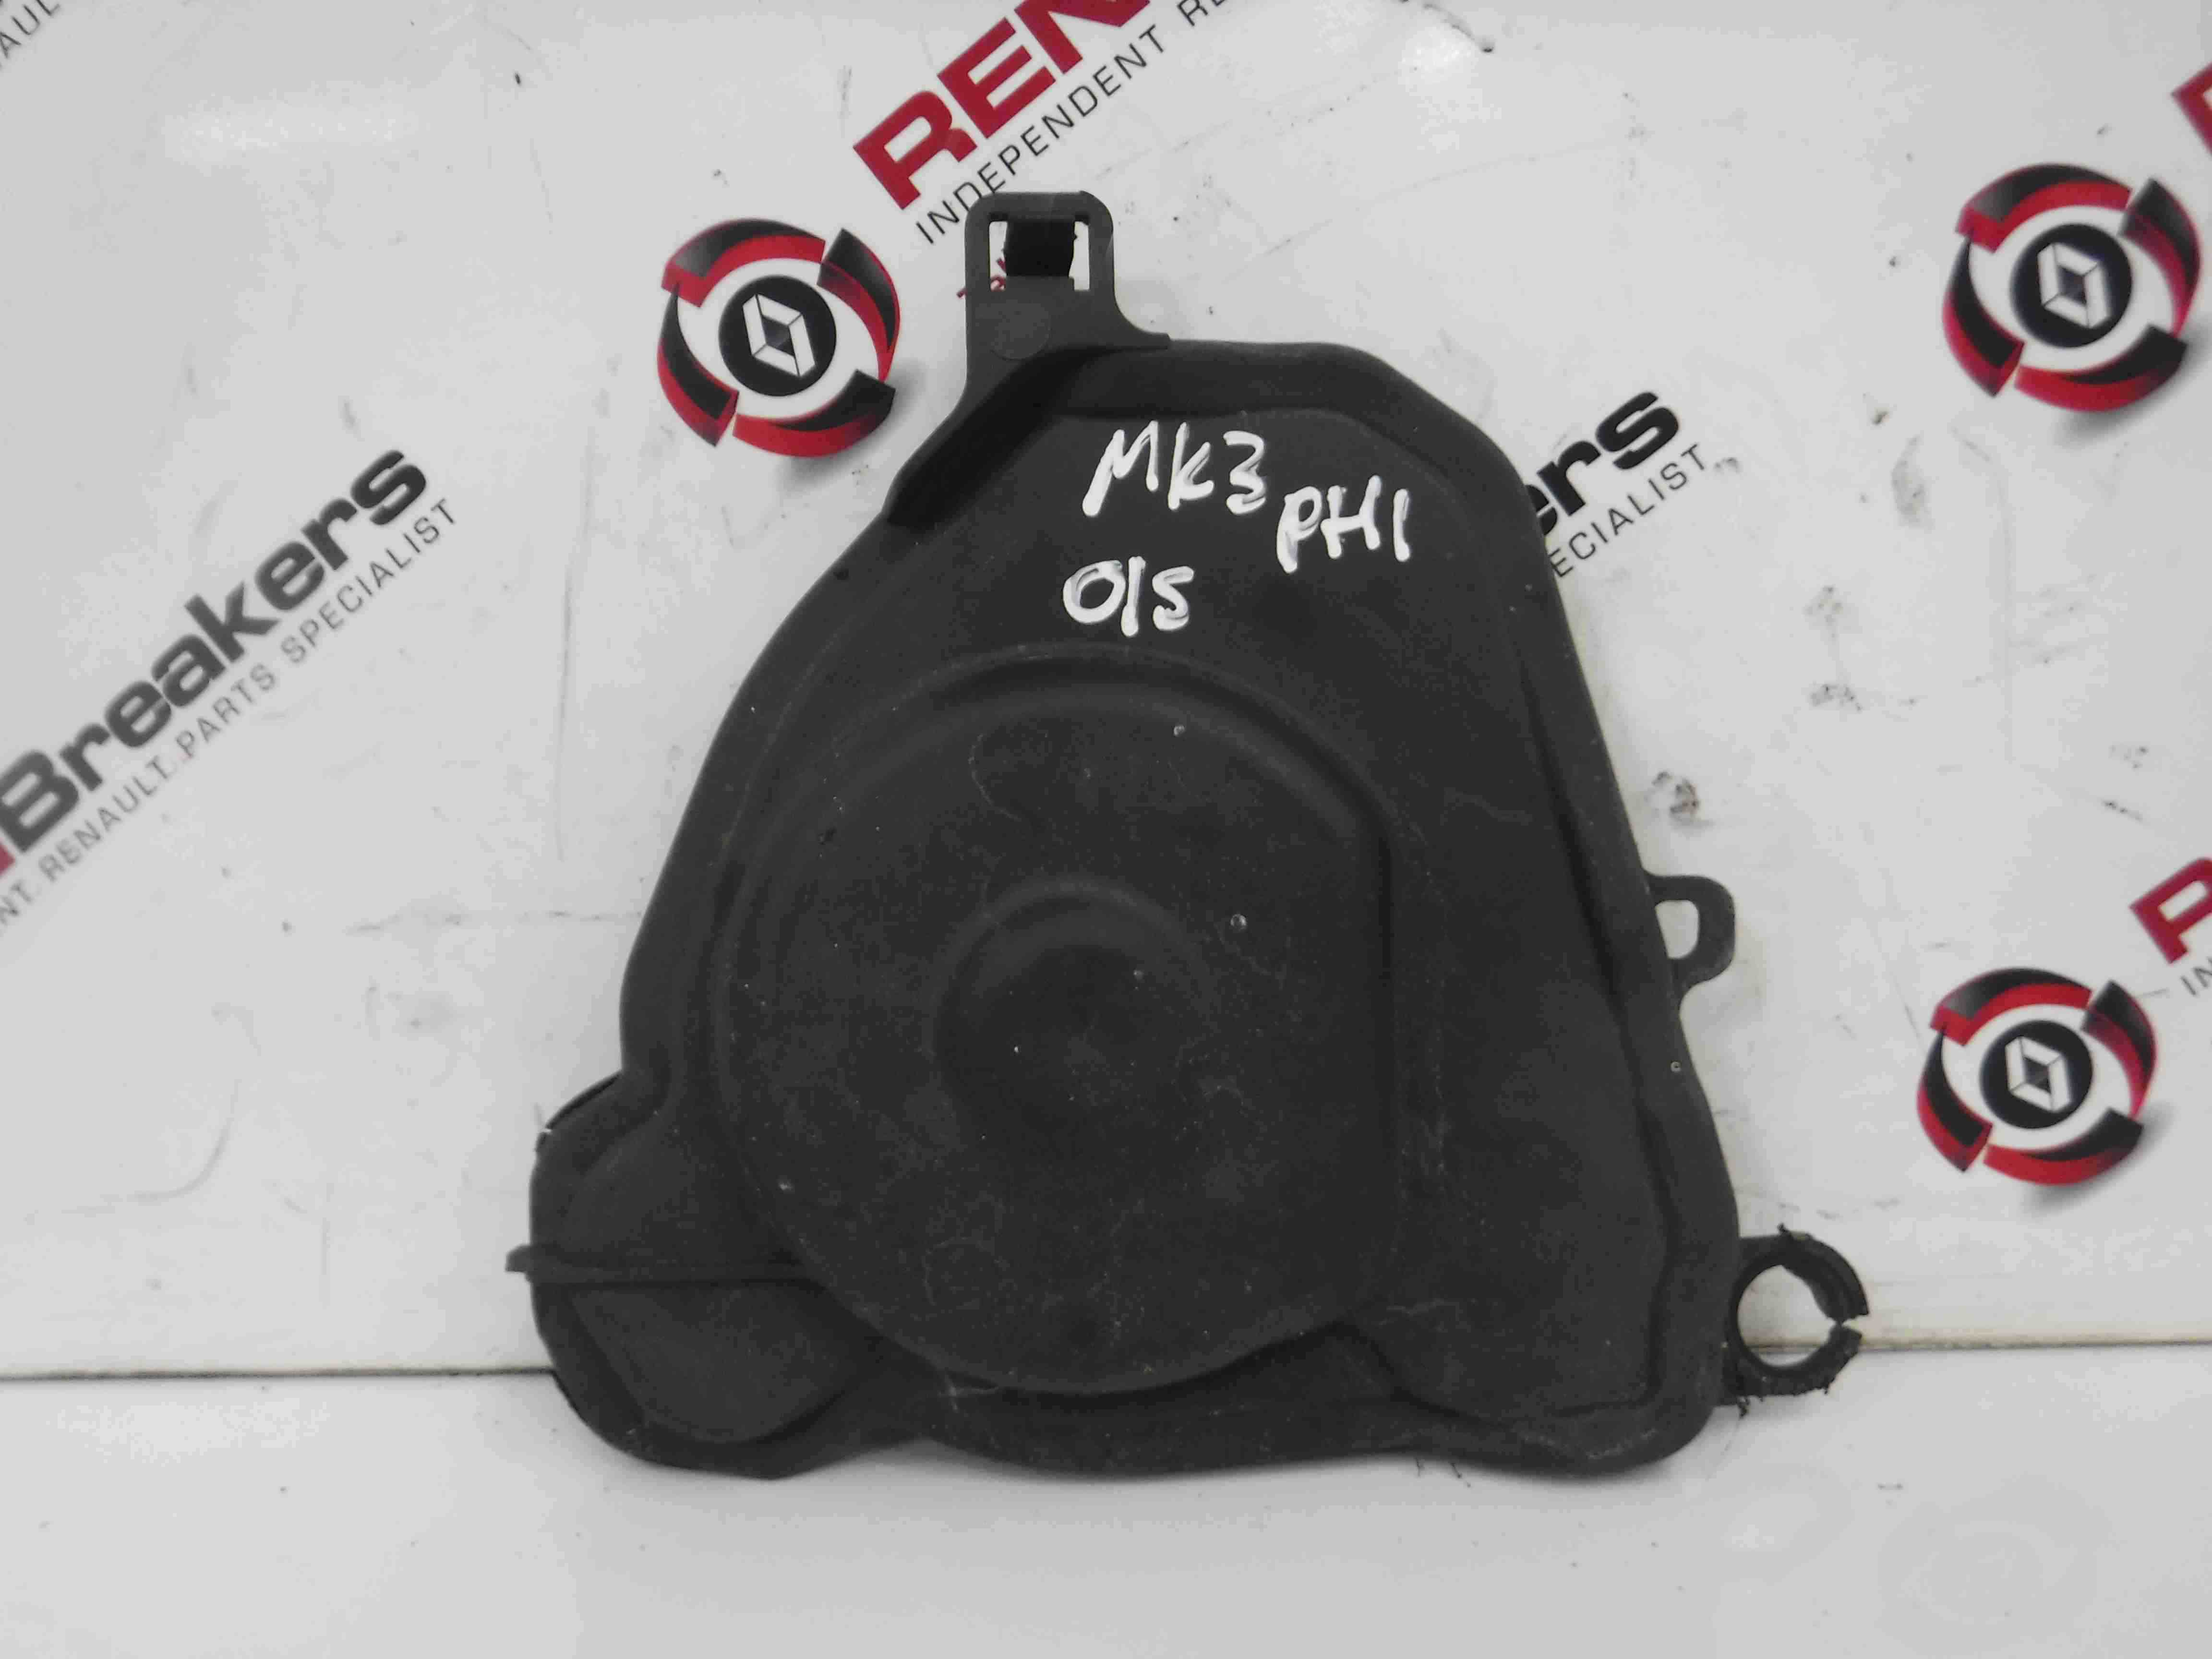 Renault Clio MK3 2005-2009 Drivers OSF Front Suspension Strut Cover 8200358977